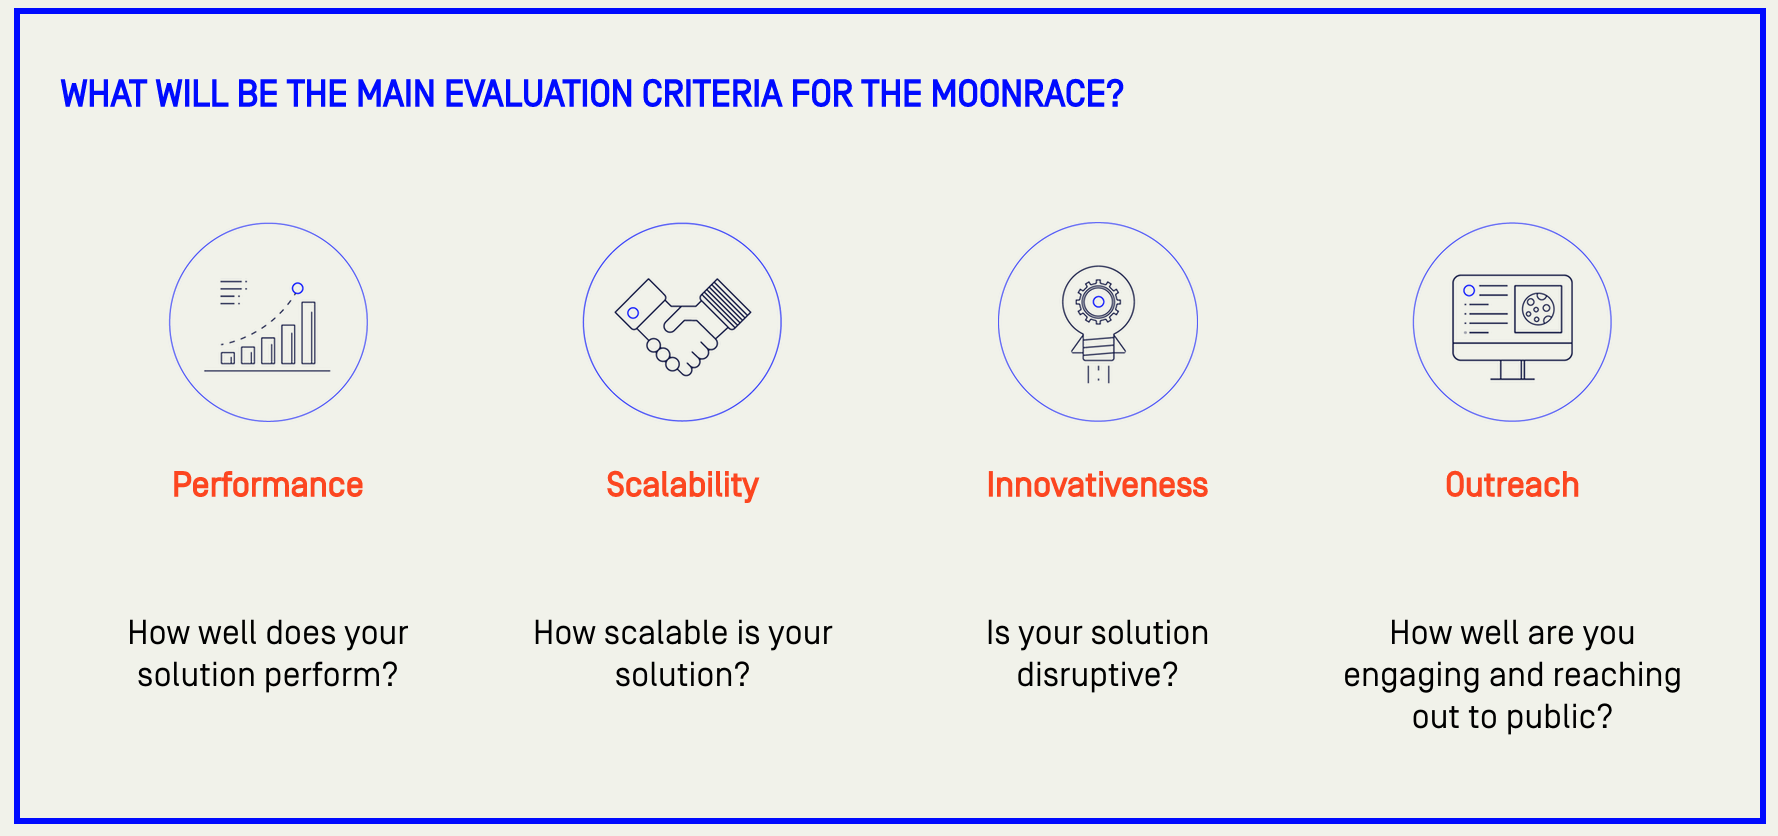 The moon race competition evaluation criteria